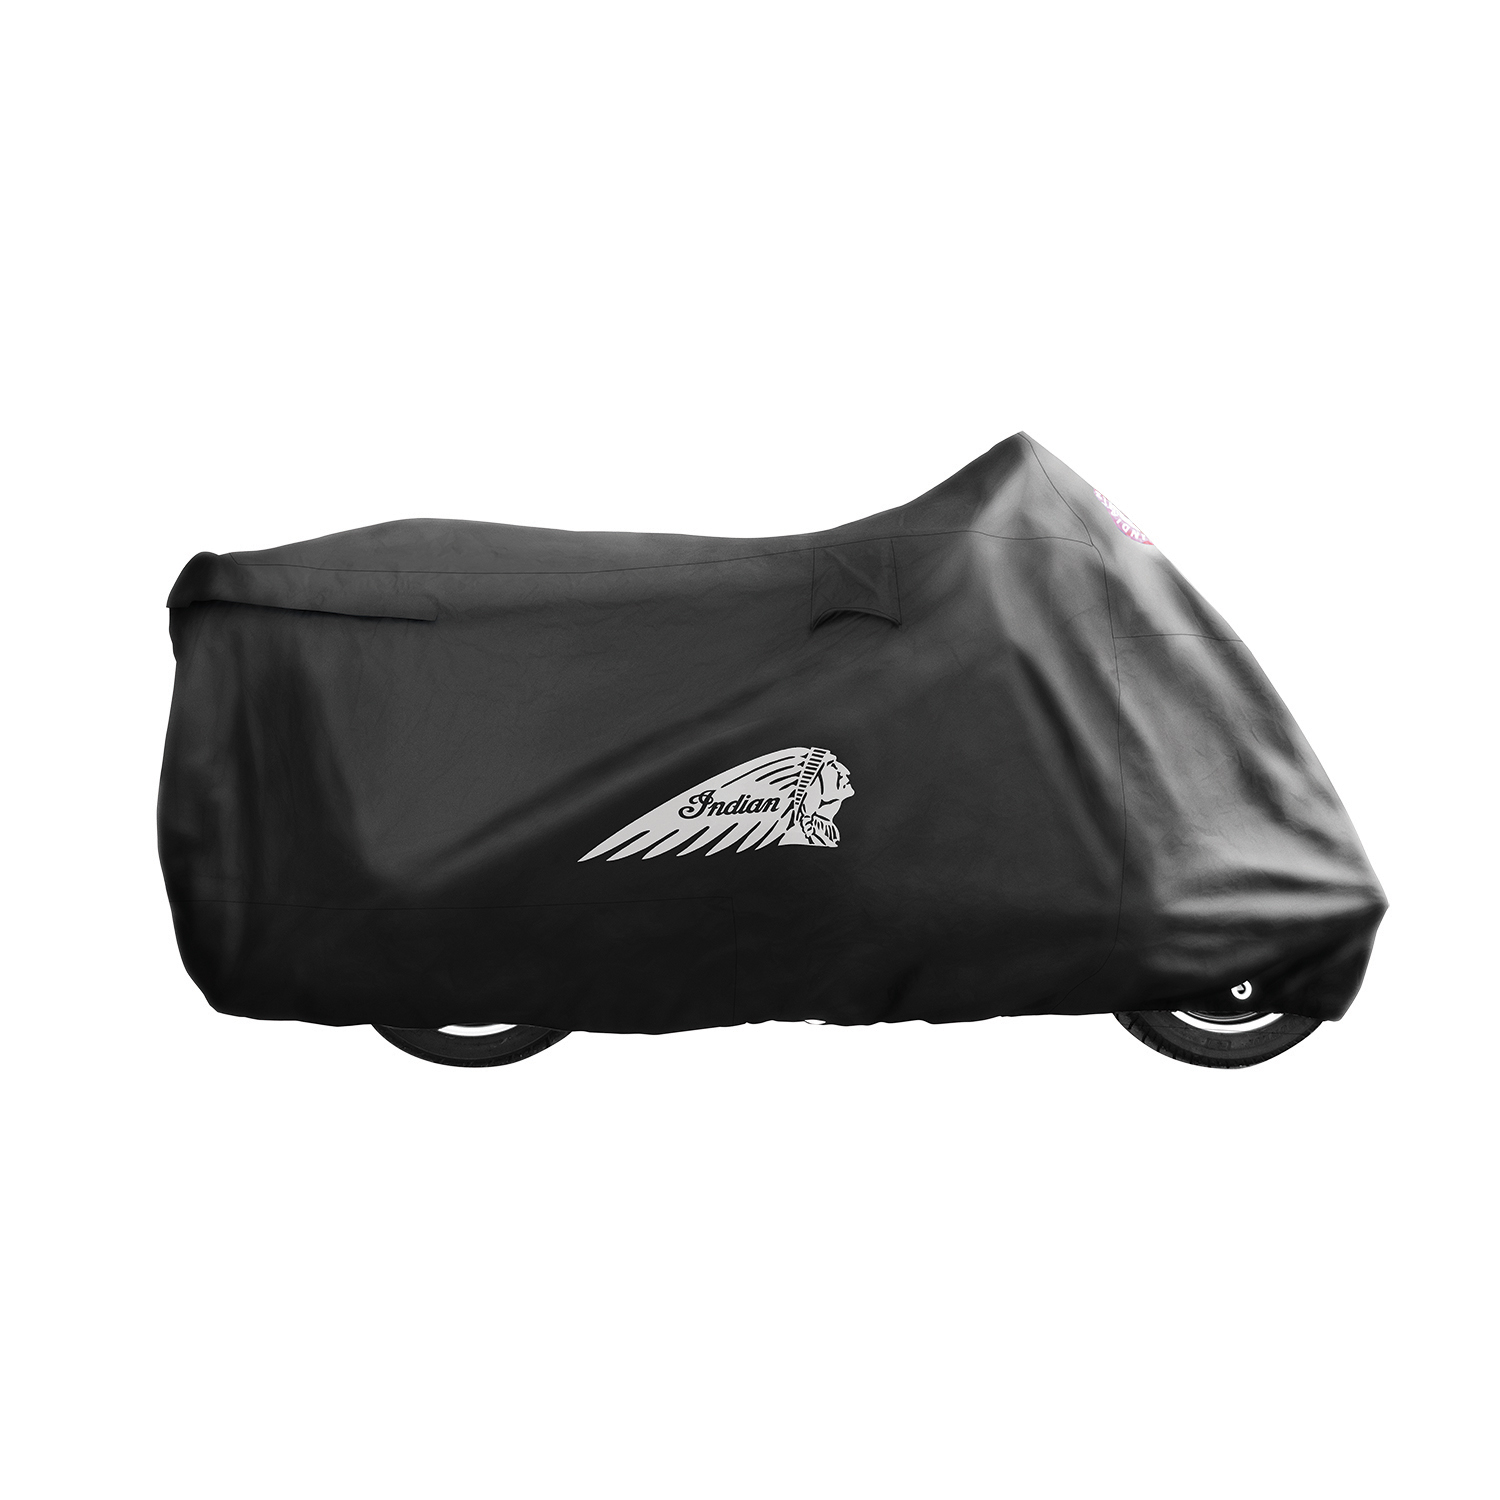 Indian Motorcycle Roadmaster Dust Cover